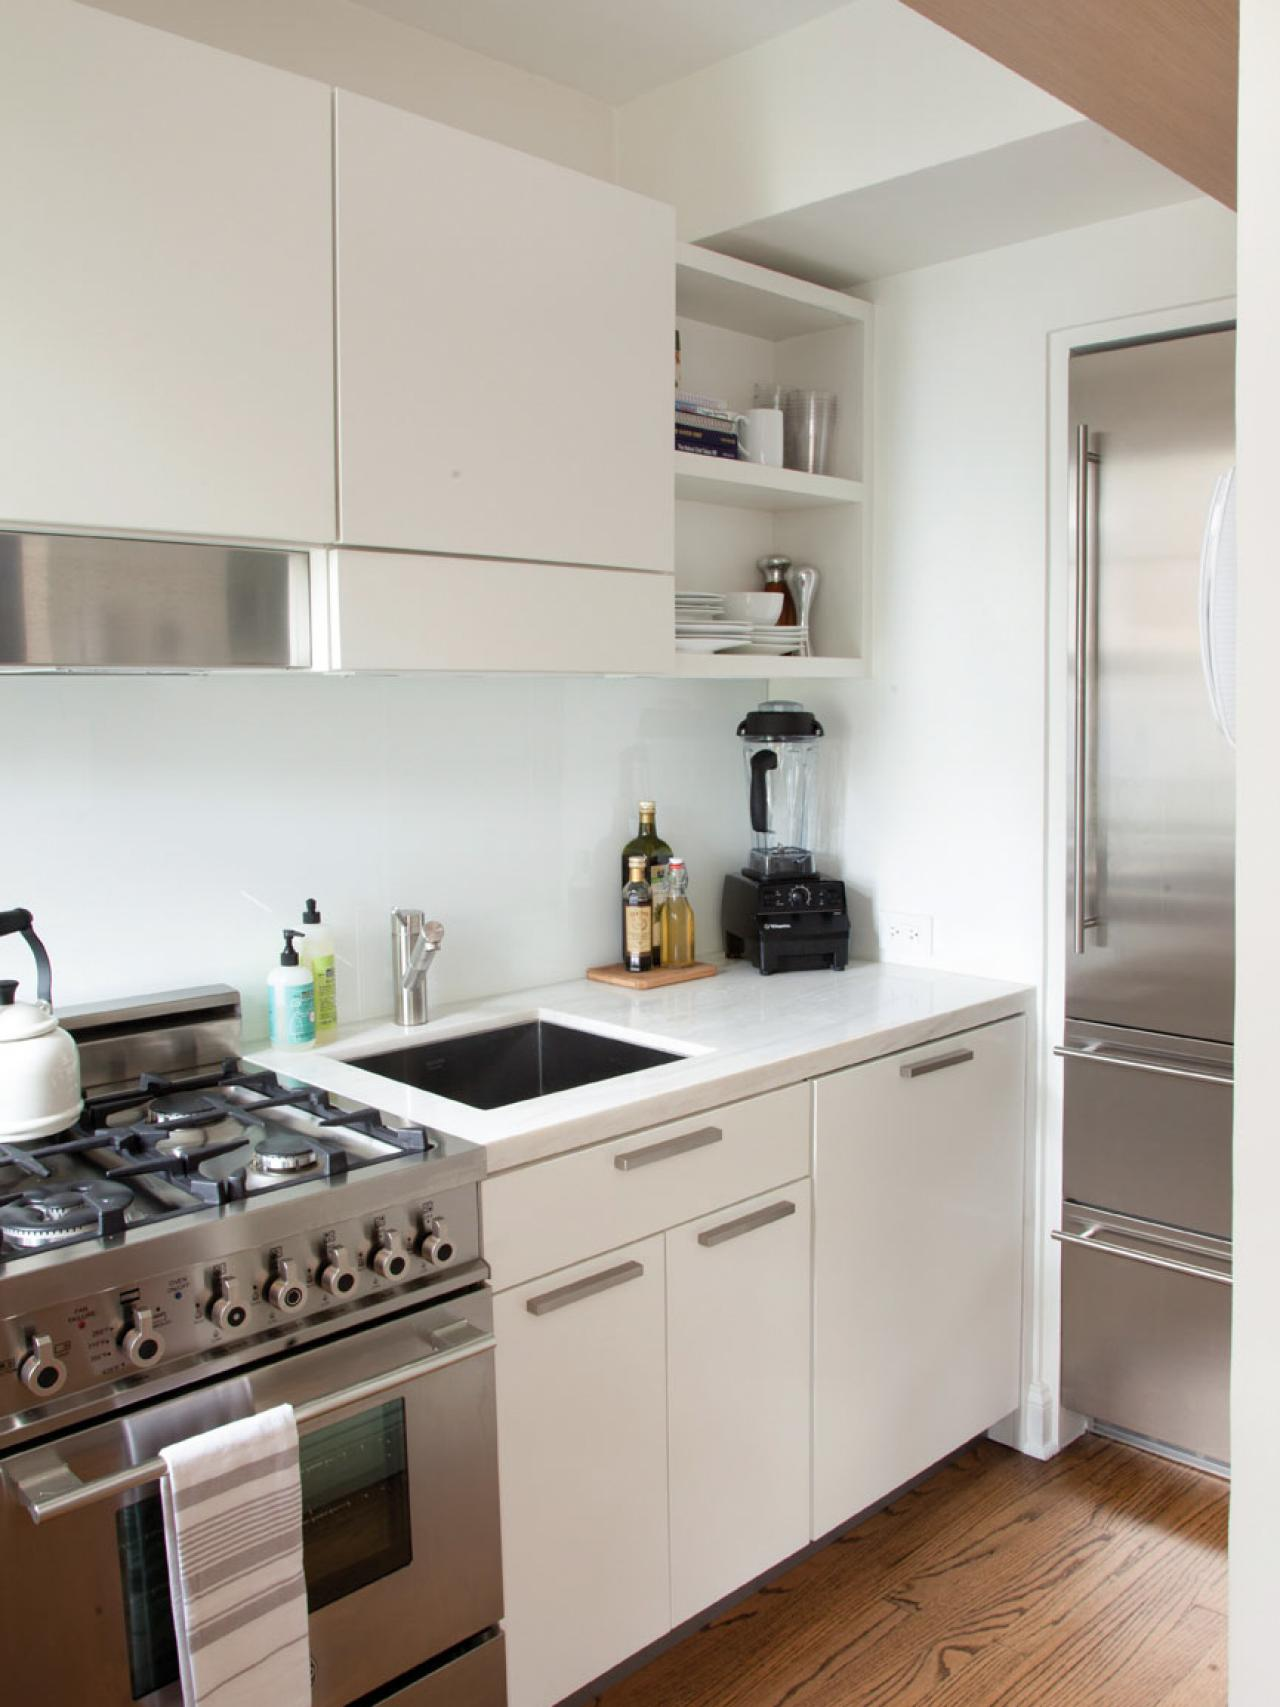 refrigerator for small kitchen exhaust fan modern design ideas hgtv pictures and tips